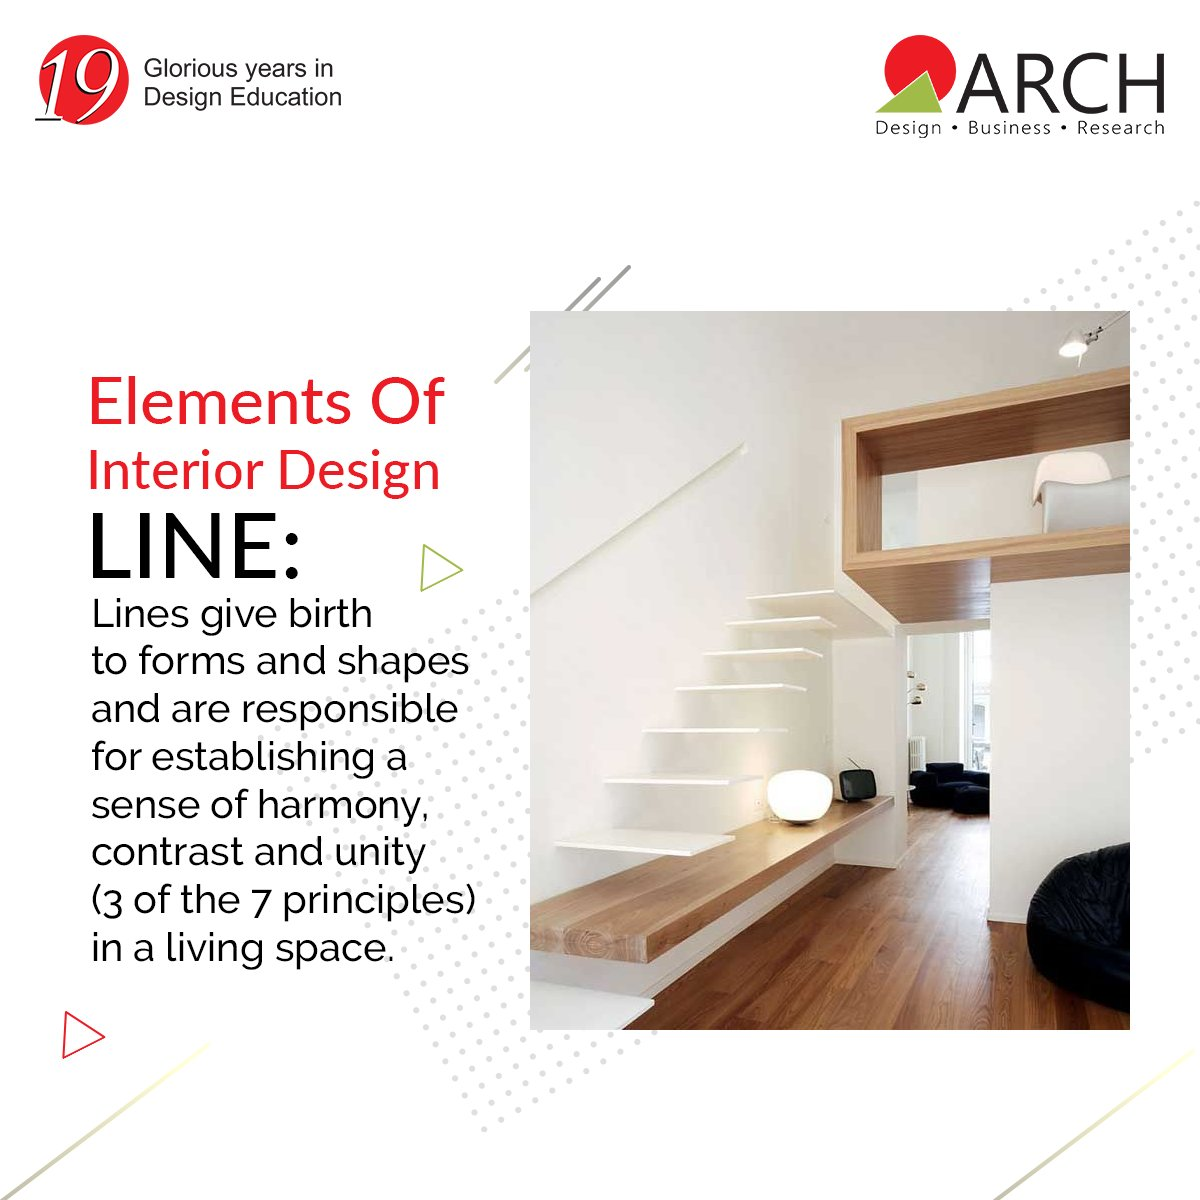 Arch College Of Design Business On Twitter Among The Most Important And Basic 7 Elements Of Interior Designs Lines Defines The Artistic And Psychological Points Of Any Interior Design The Same